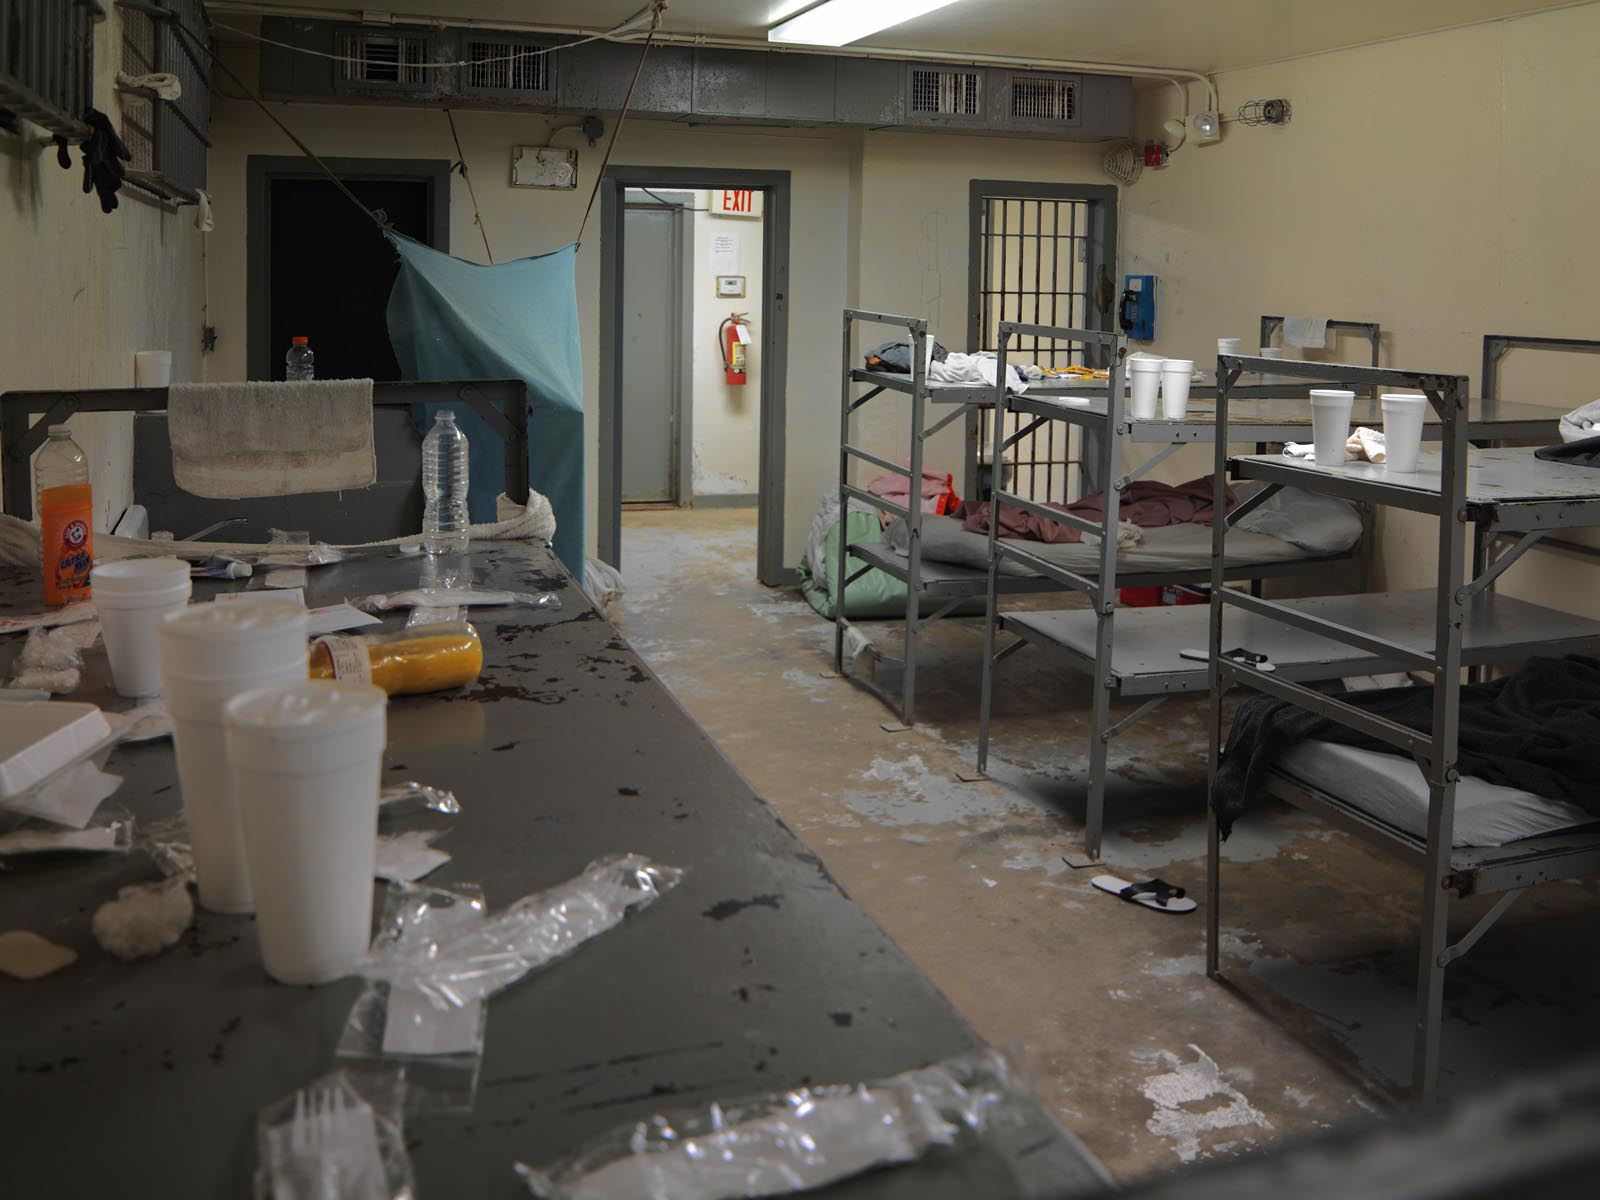 Men's dormitory in Calhoun County Jail in Morgan